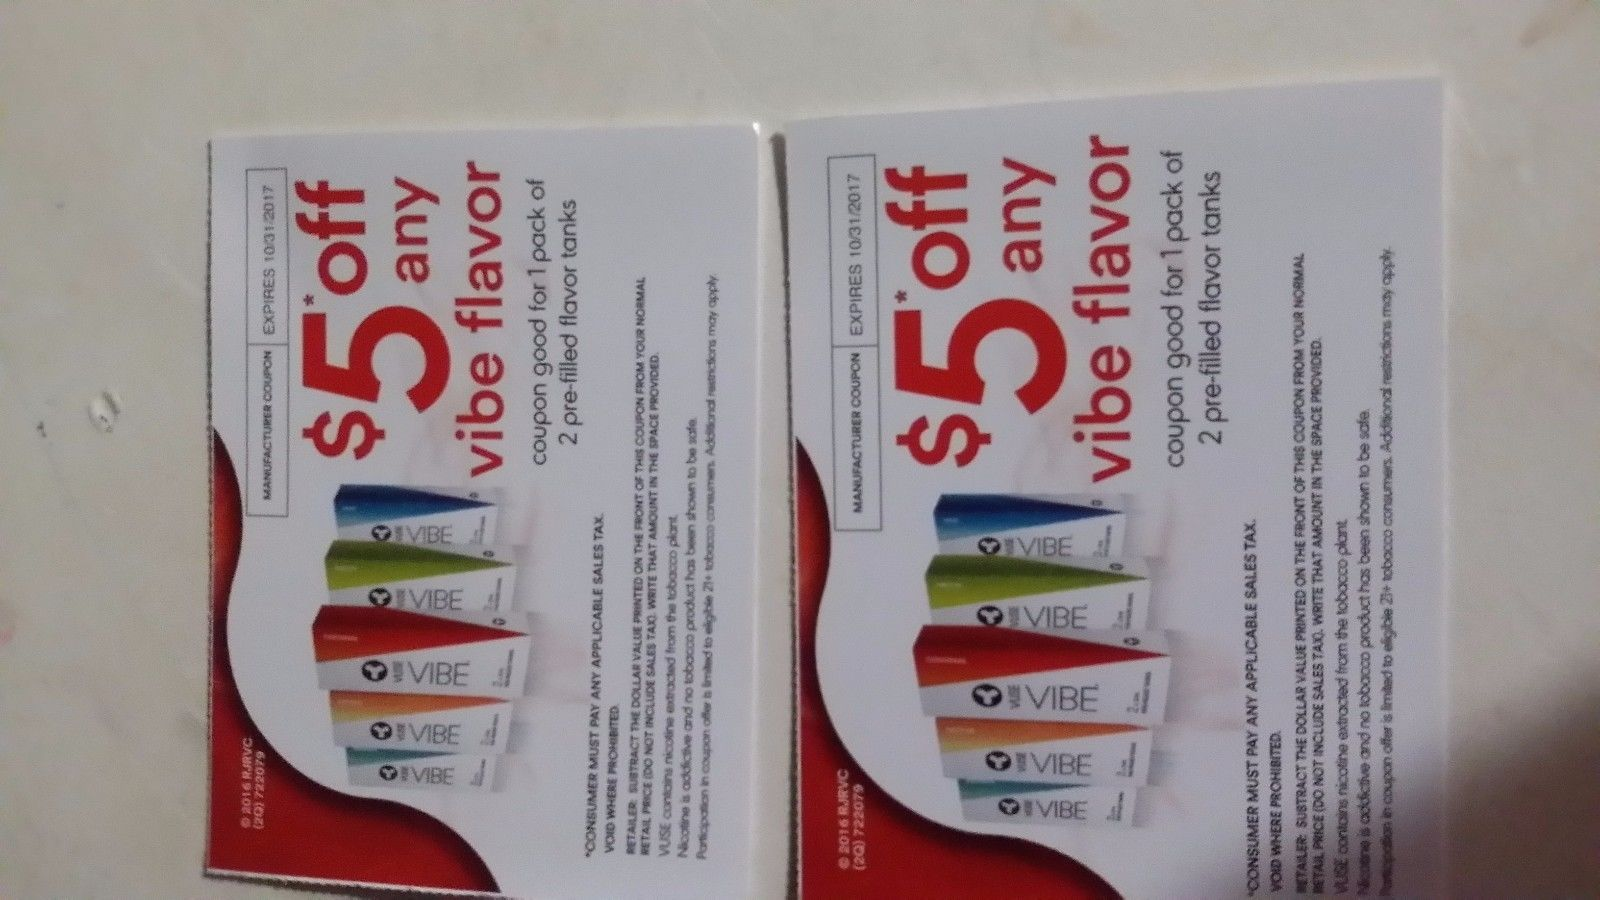 Coupons Vuse Vibe Coupons A 10 Value Buy It Now Only 2 99